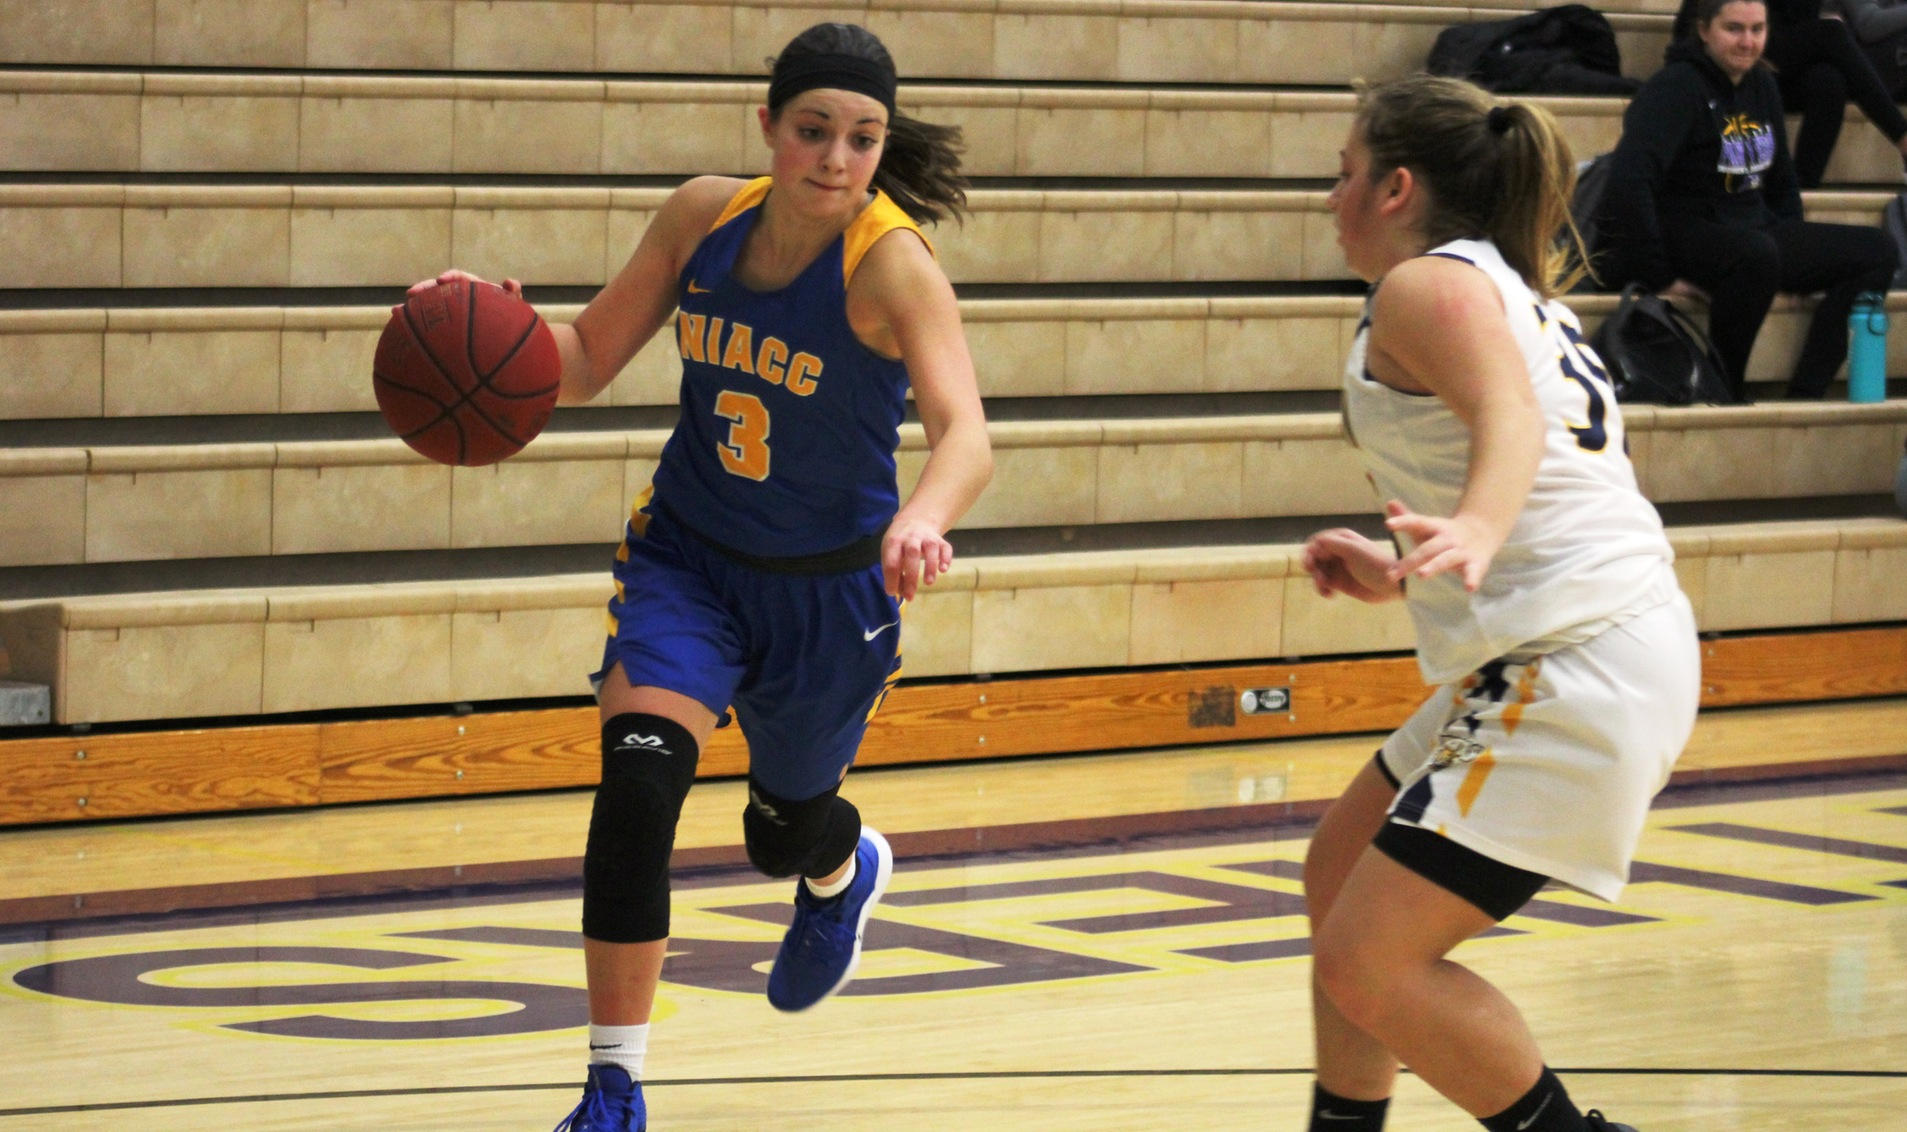 NIACC's Mandy Willems drives to the basket during a game against Marshalltown CC earlier this season.